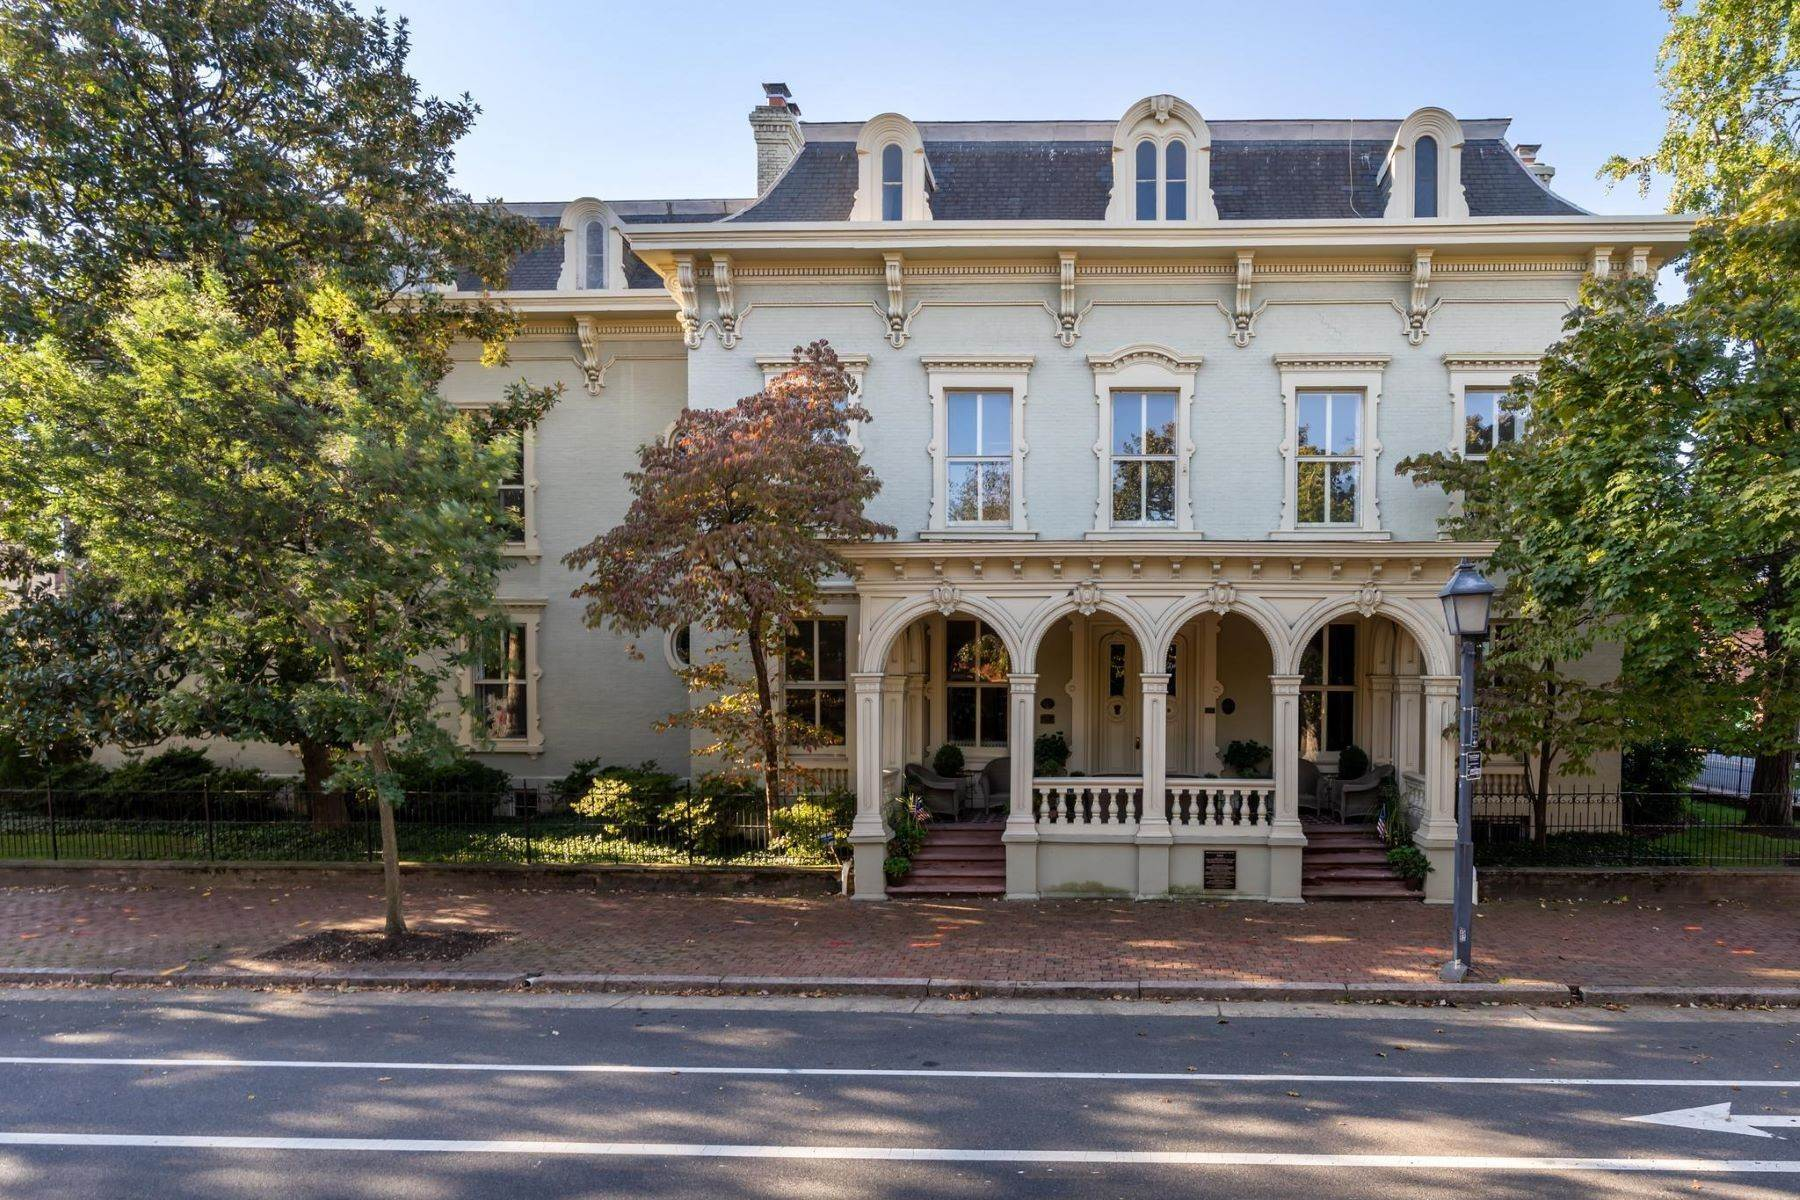 Condominiums for Sale at Old Town, Alexandria, Virginia, 22314 United States